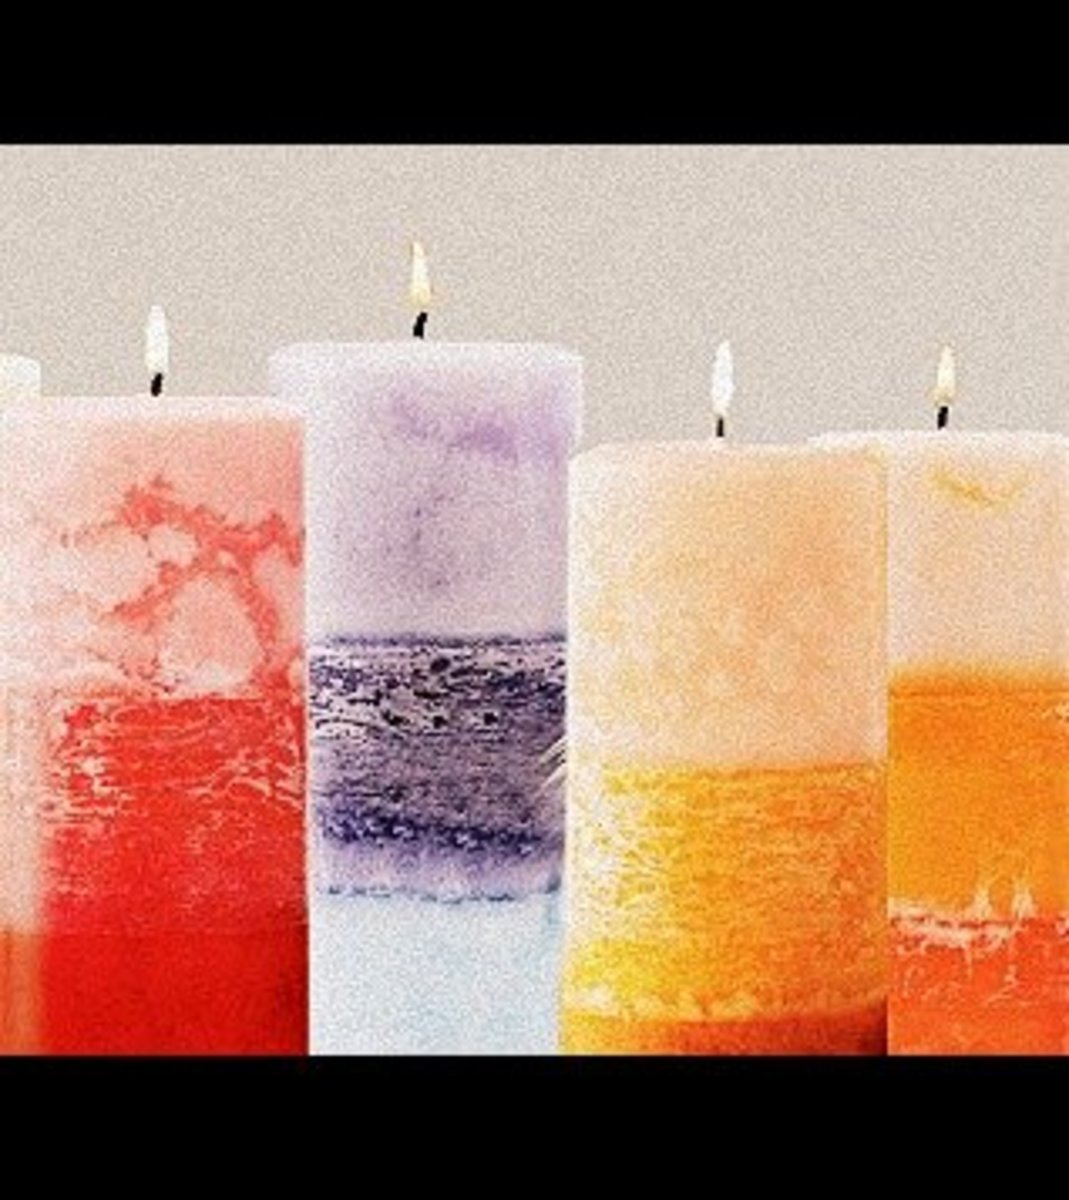 Candles made from wax poured into recycled chip containers